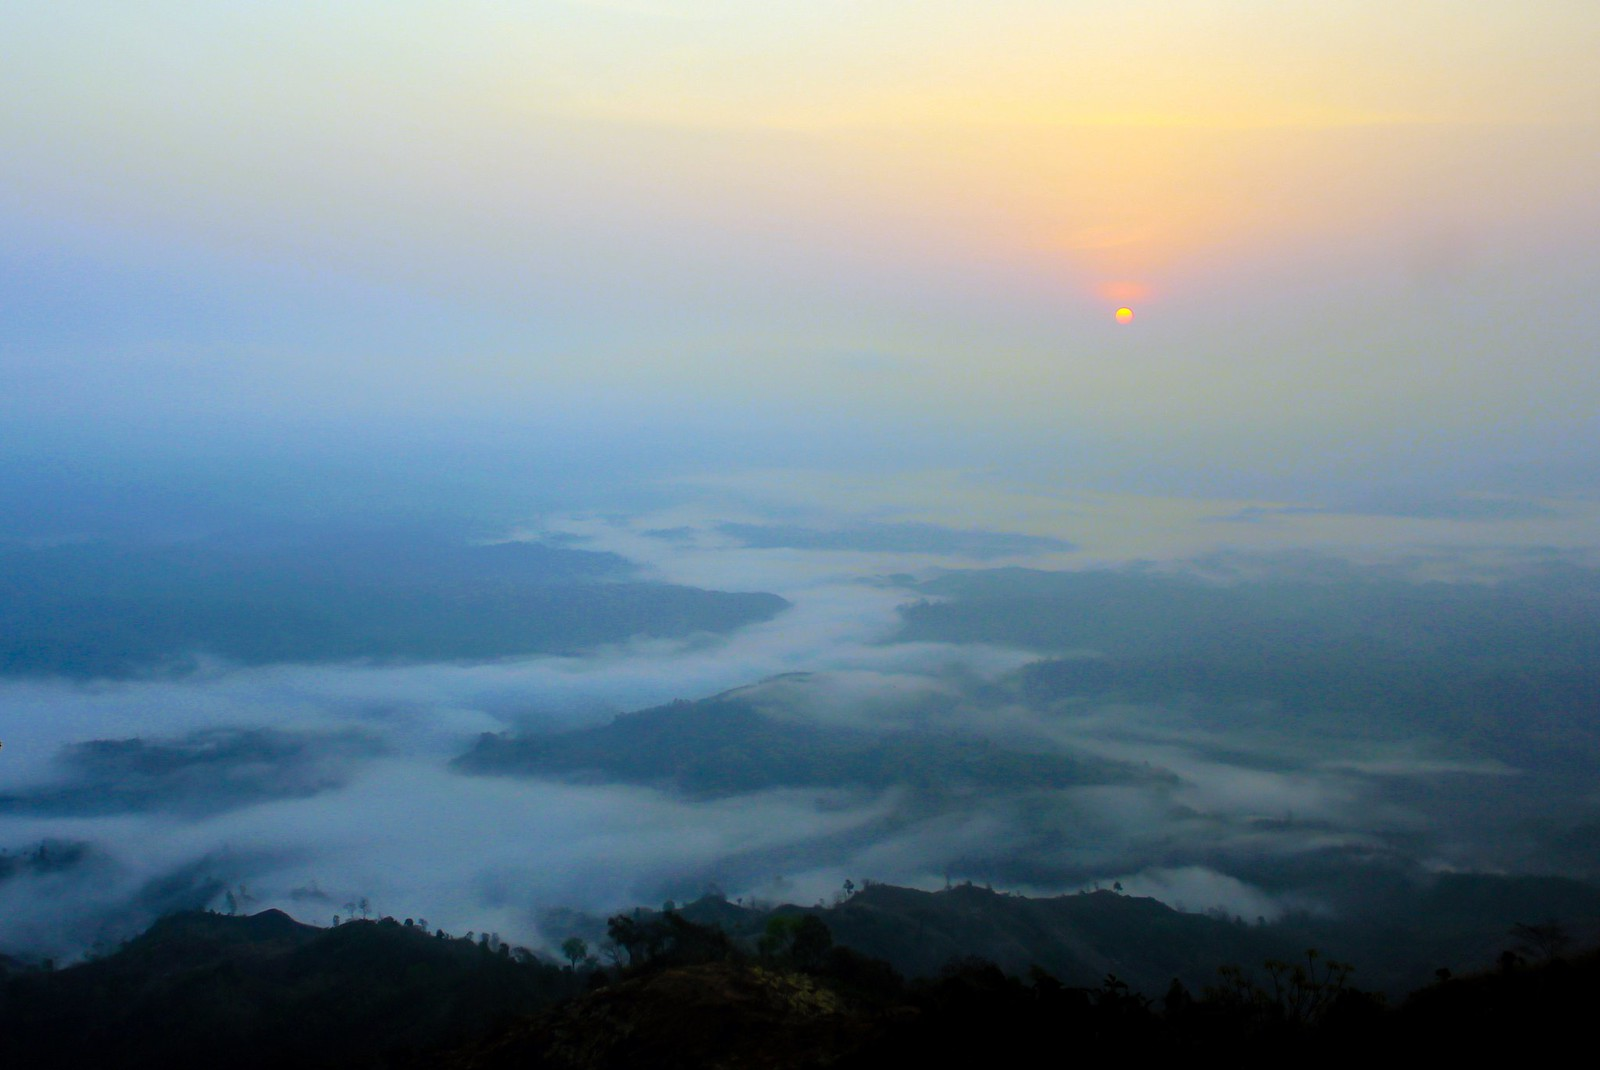 sunrise at Nilgiri, Bandarban